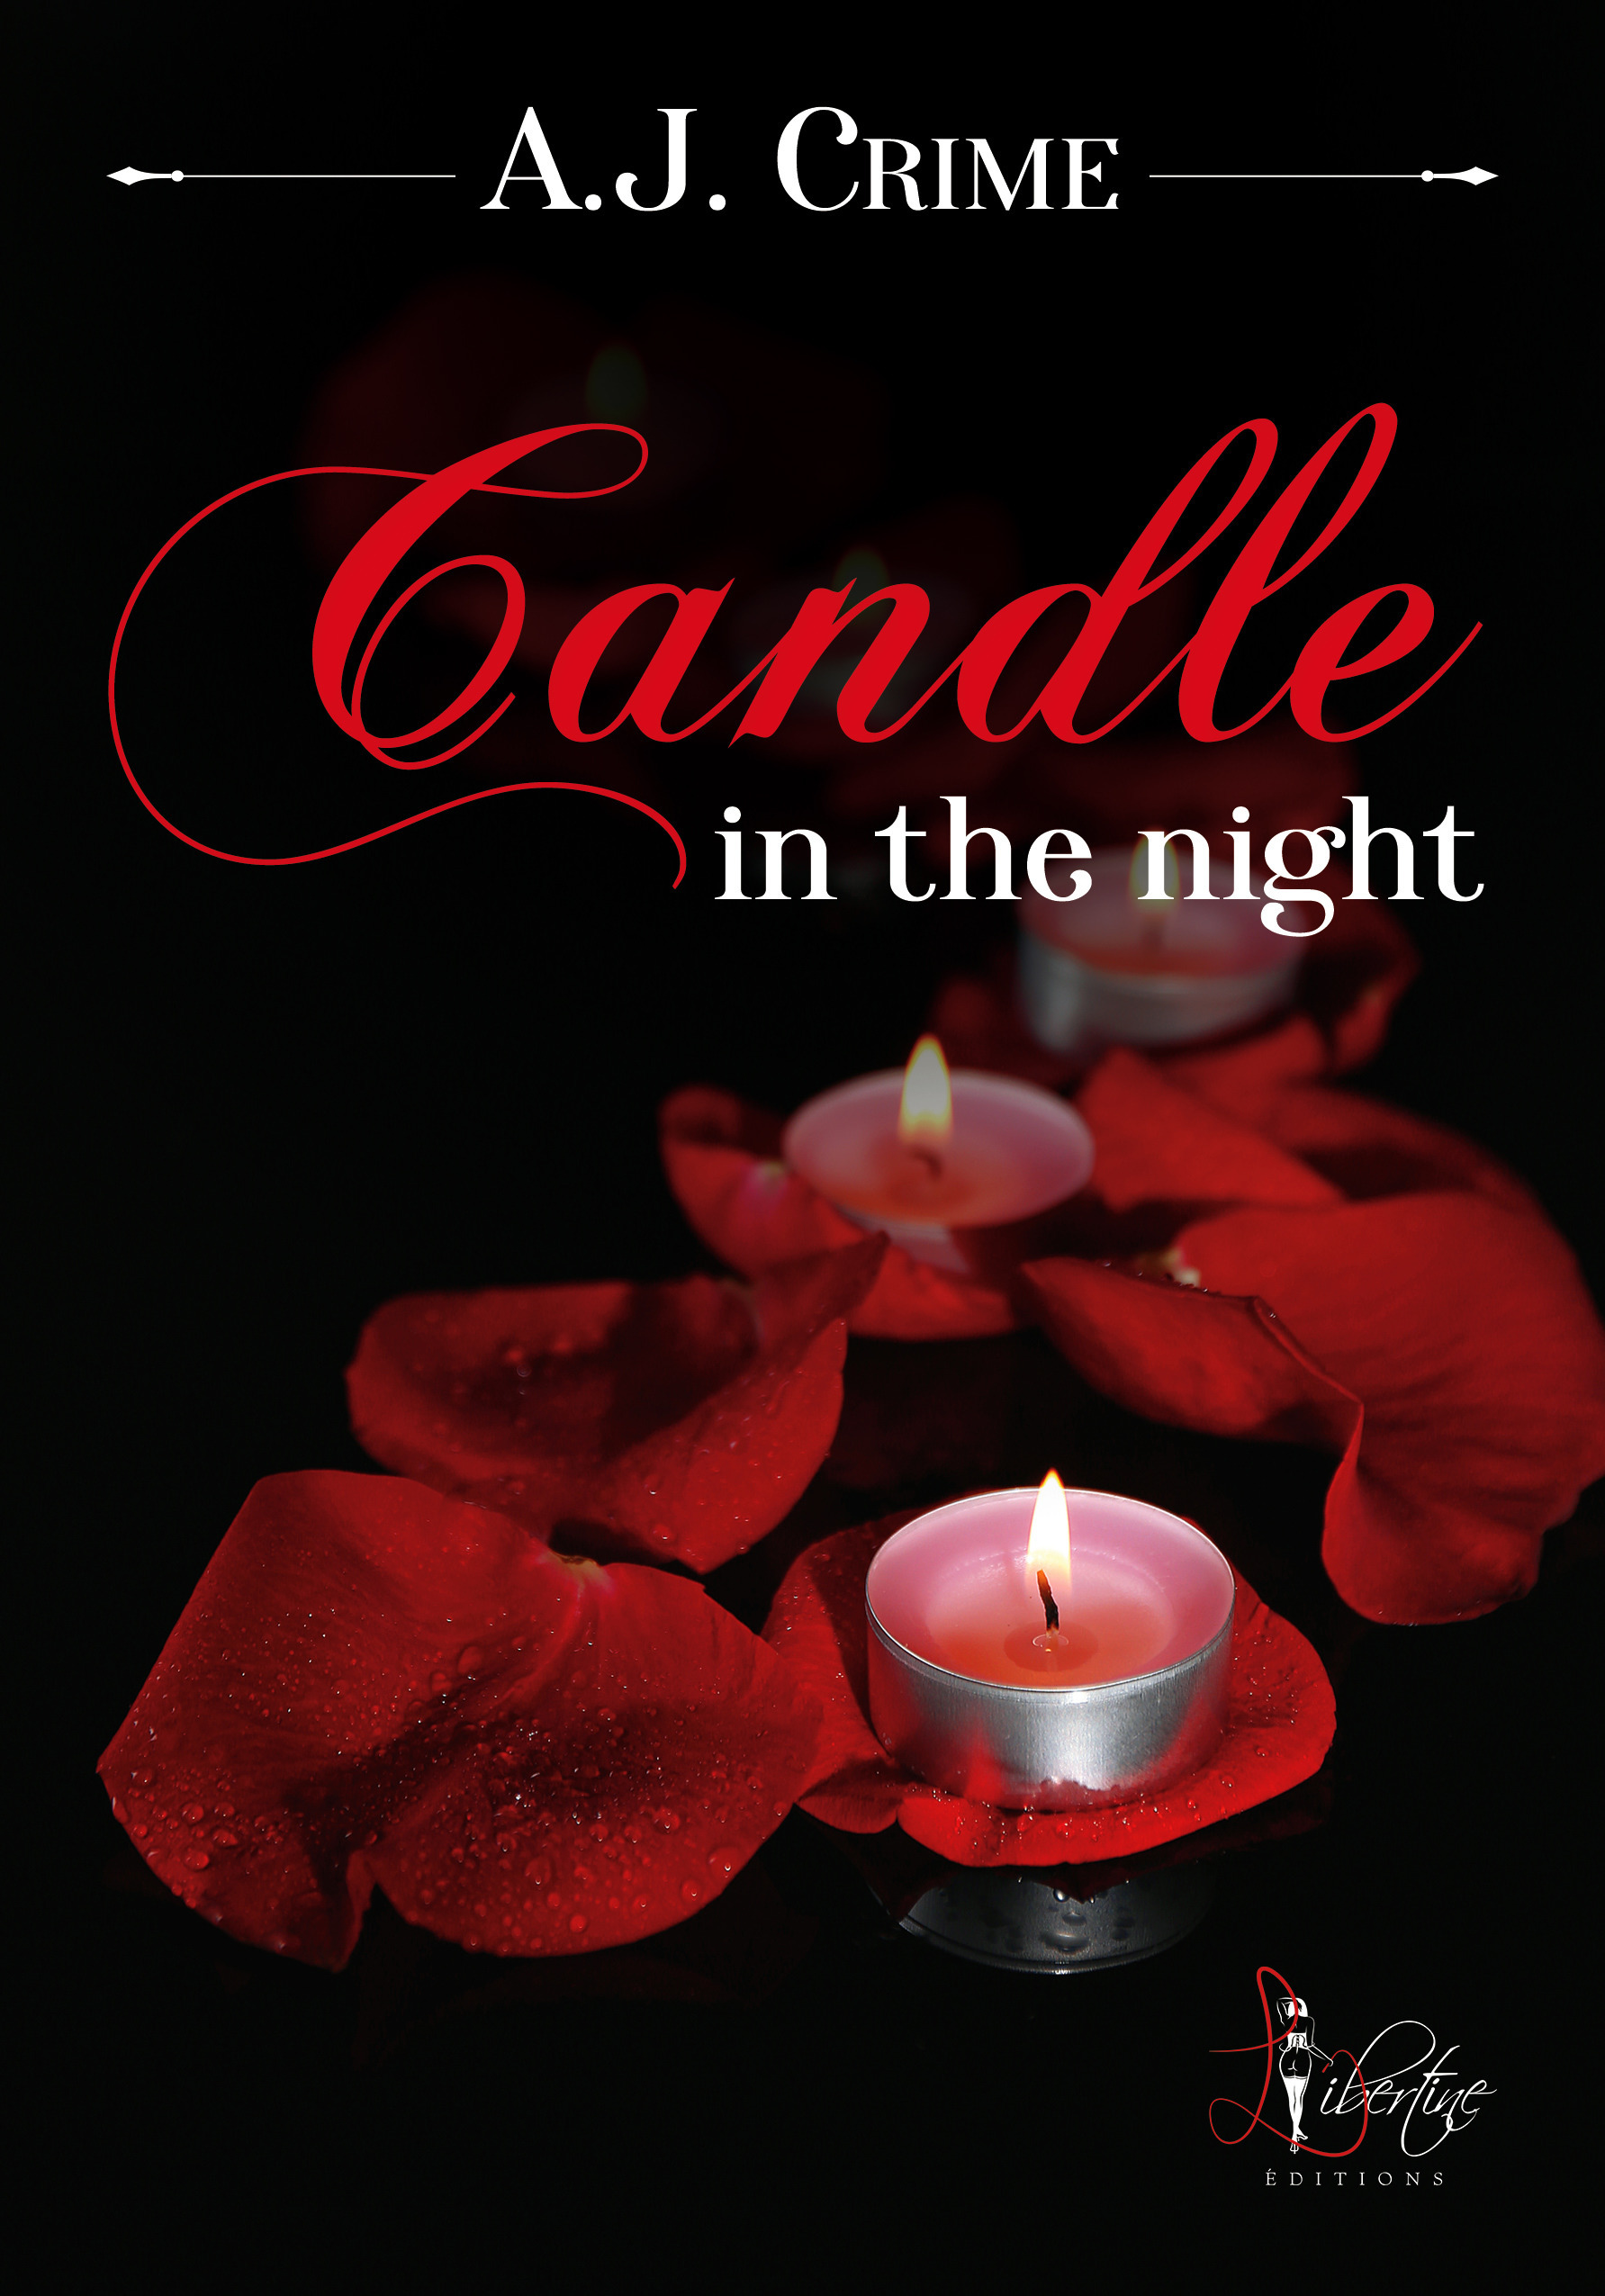 Candle in the night  - A. J. Crime